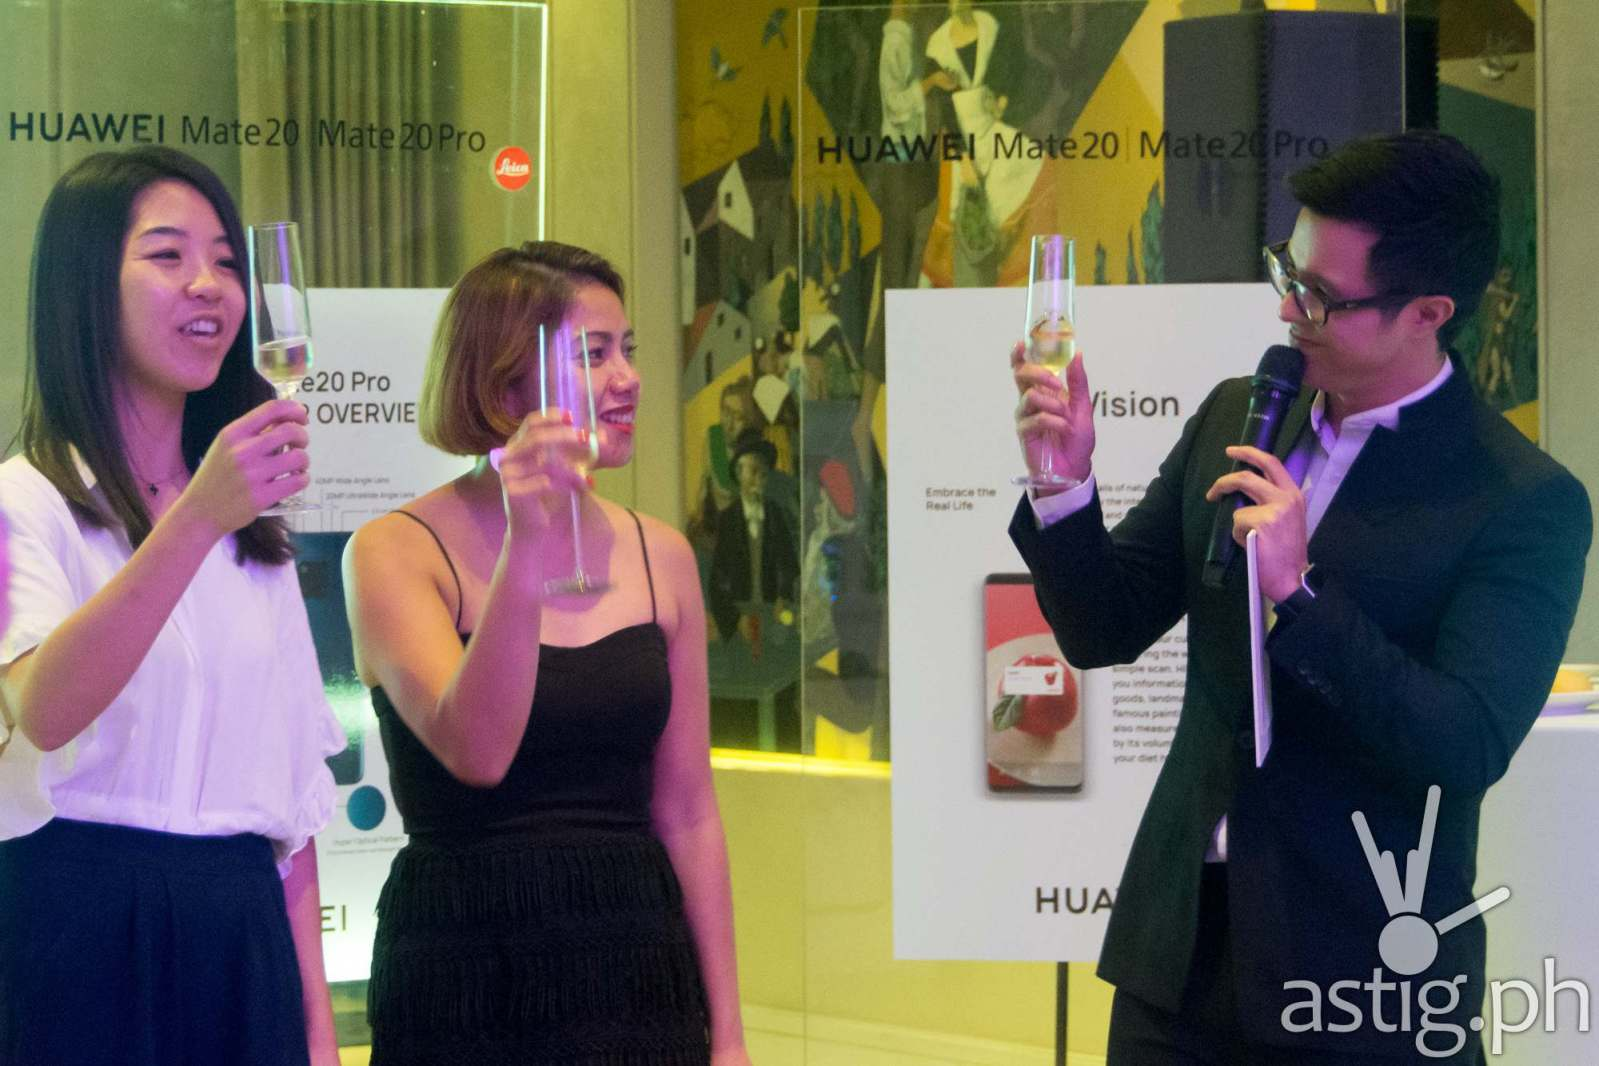 Corinne Risos-Bacani, Marketing Director for Huawei Philippines initiates a toast at the launch held in Makati